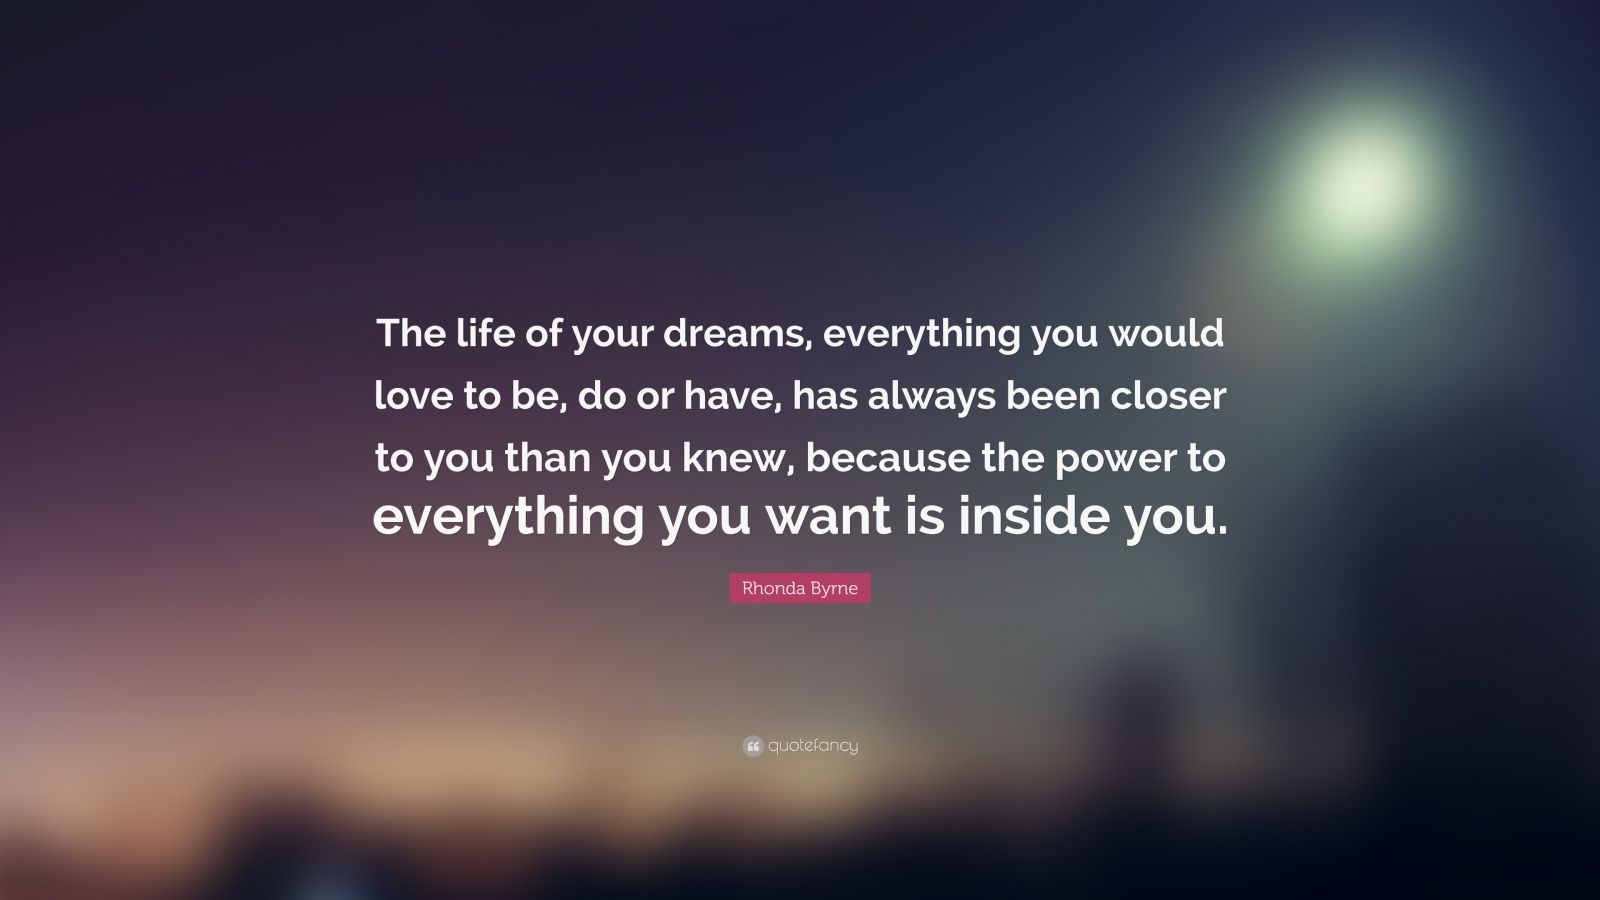 "Rhonda Byrne Quote: ""The life of your dreams, everything you would love to be, do or have, has always been closer to you than you knew, because the power to everything you want is inside you."""